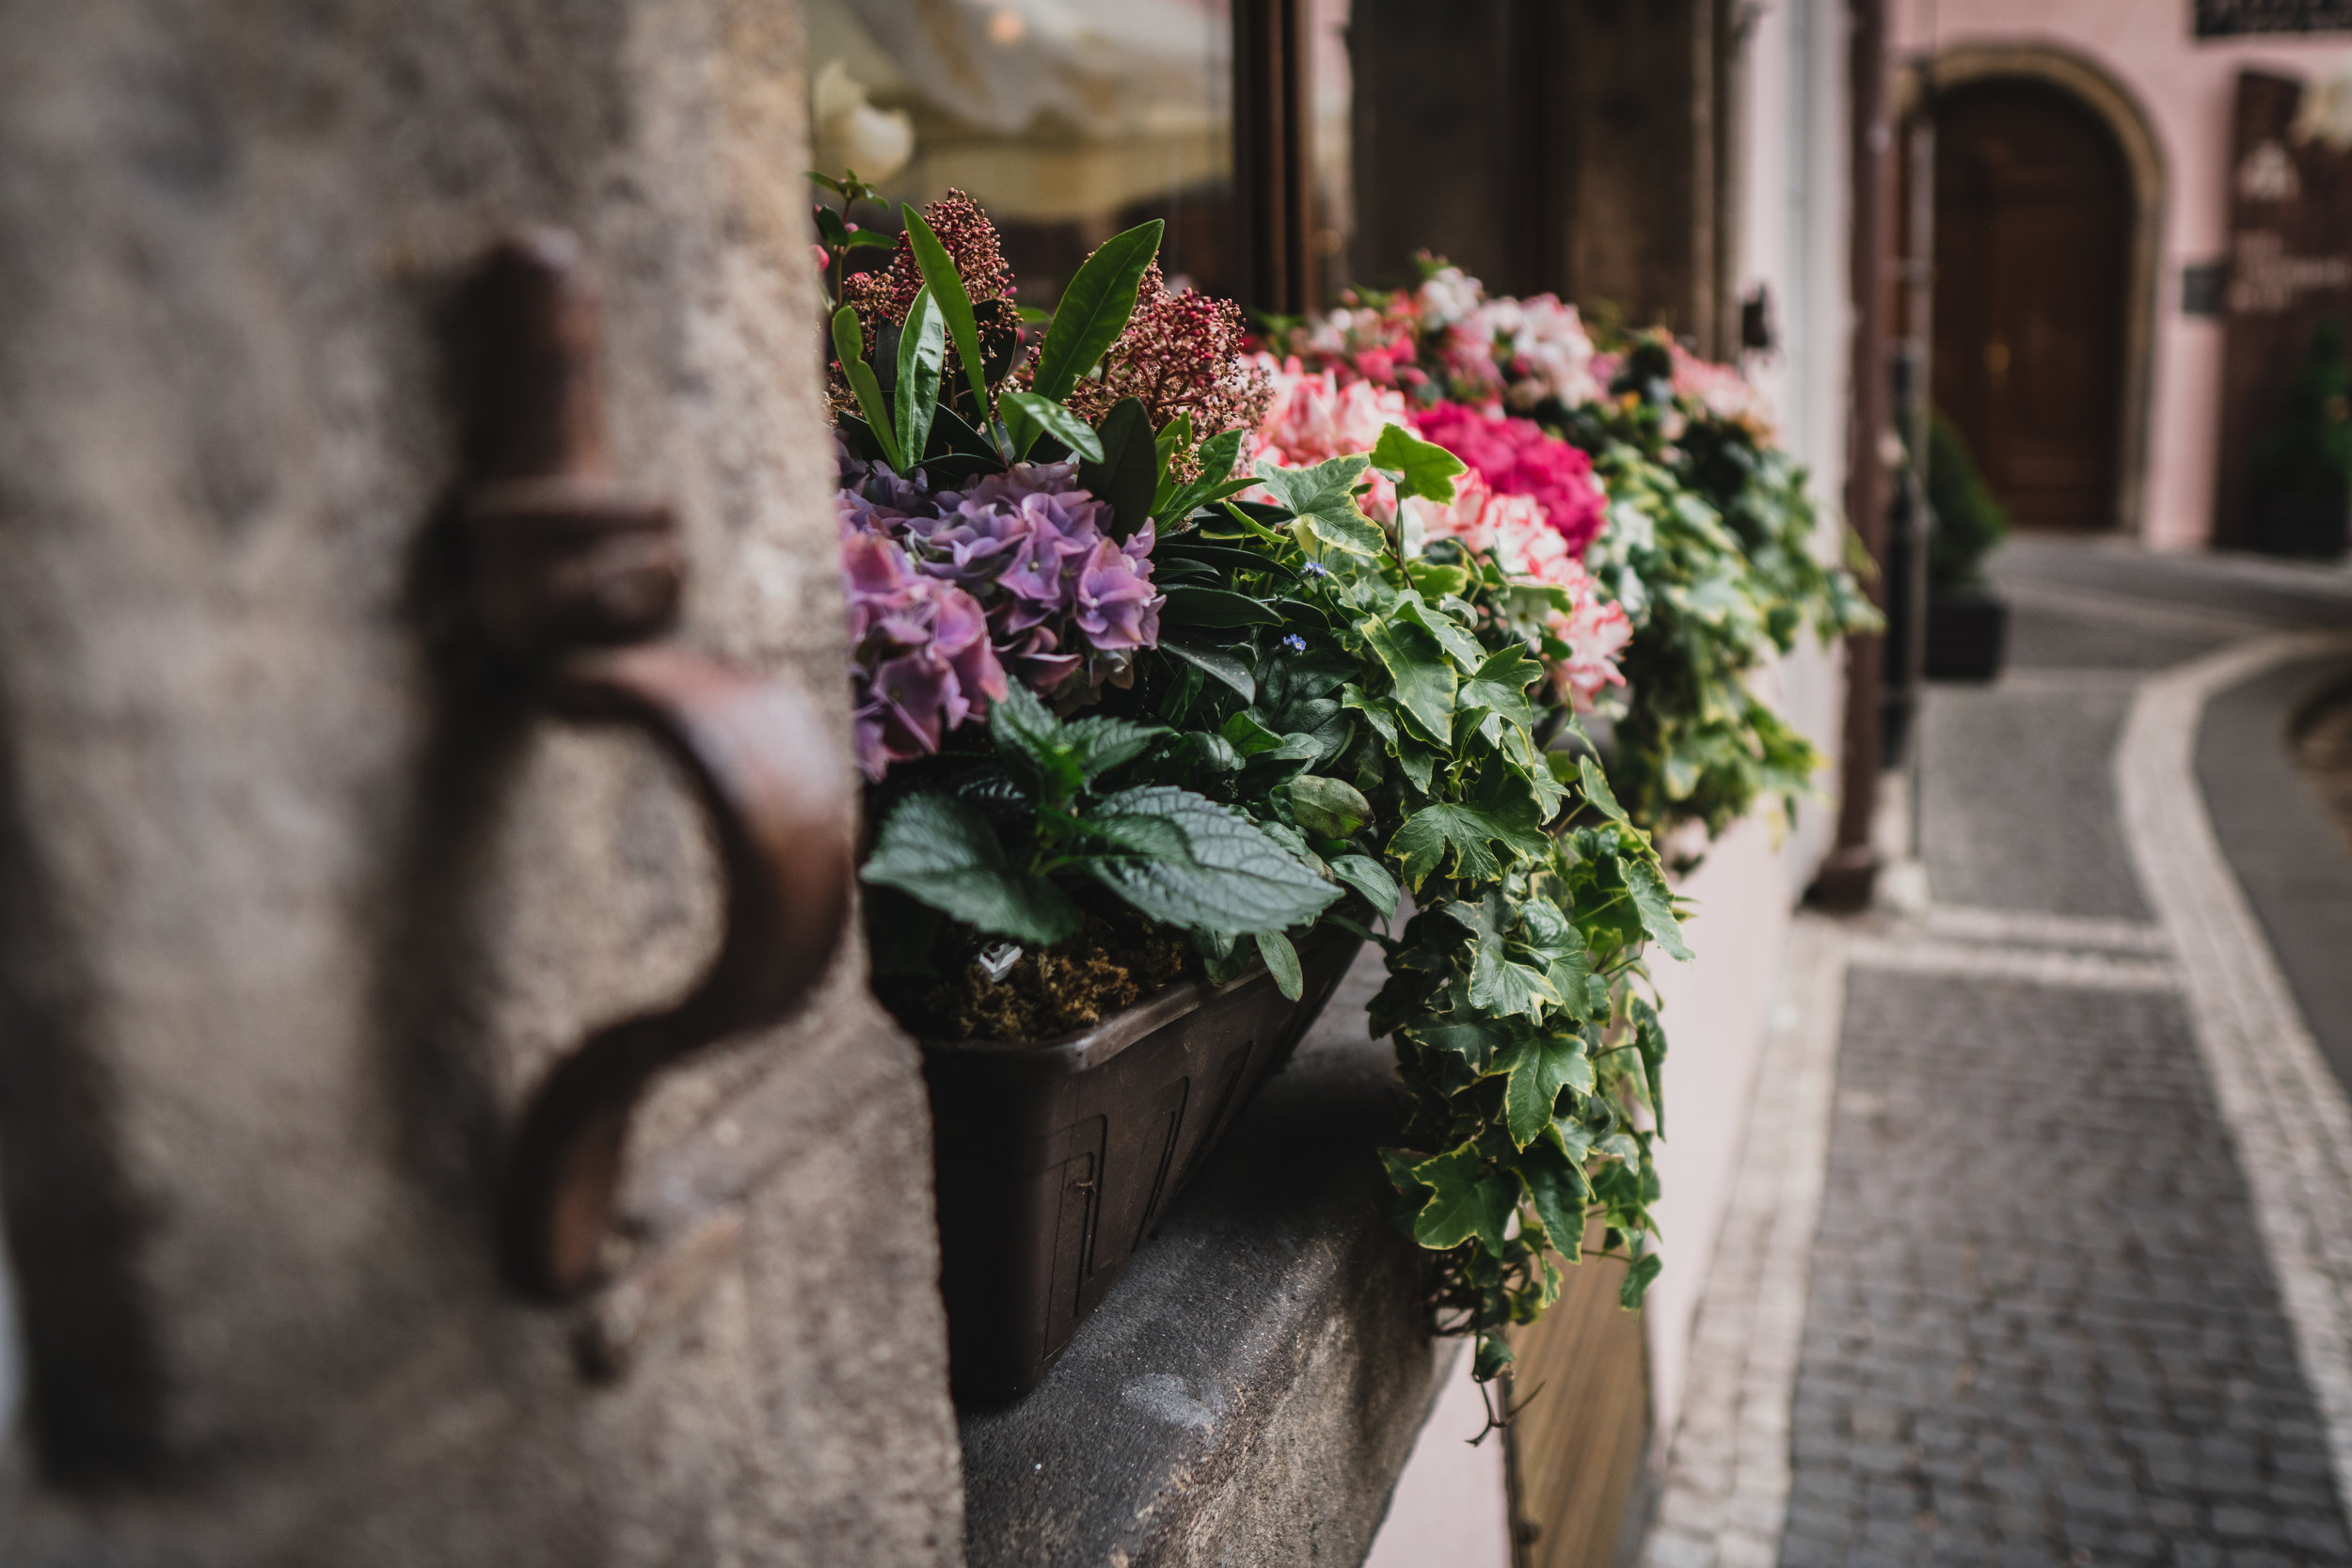 Window Boxes & Planters - We love making gorgeous window boxes and planters. Already have planters? Great, send us a photo of the boxes or planters you want refreshed and we'll send you an estimate, and install availability. You don't even have to be home! Pay online and come home to beautiful flowers.